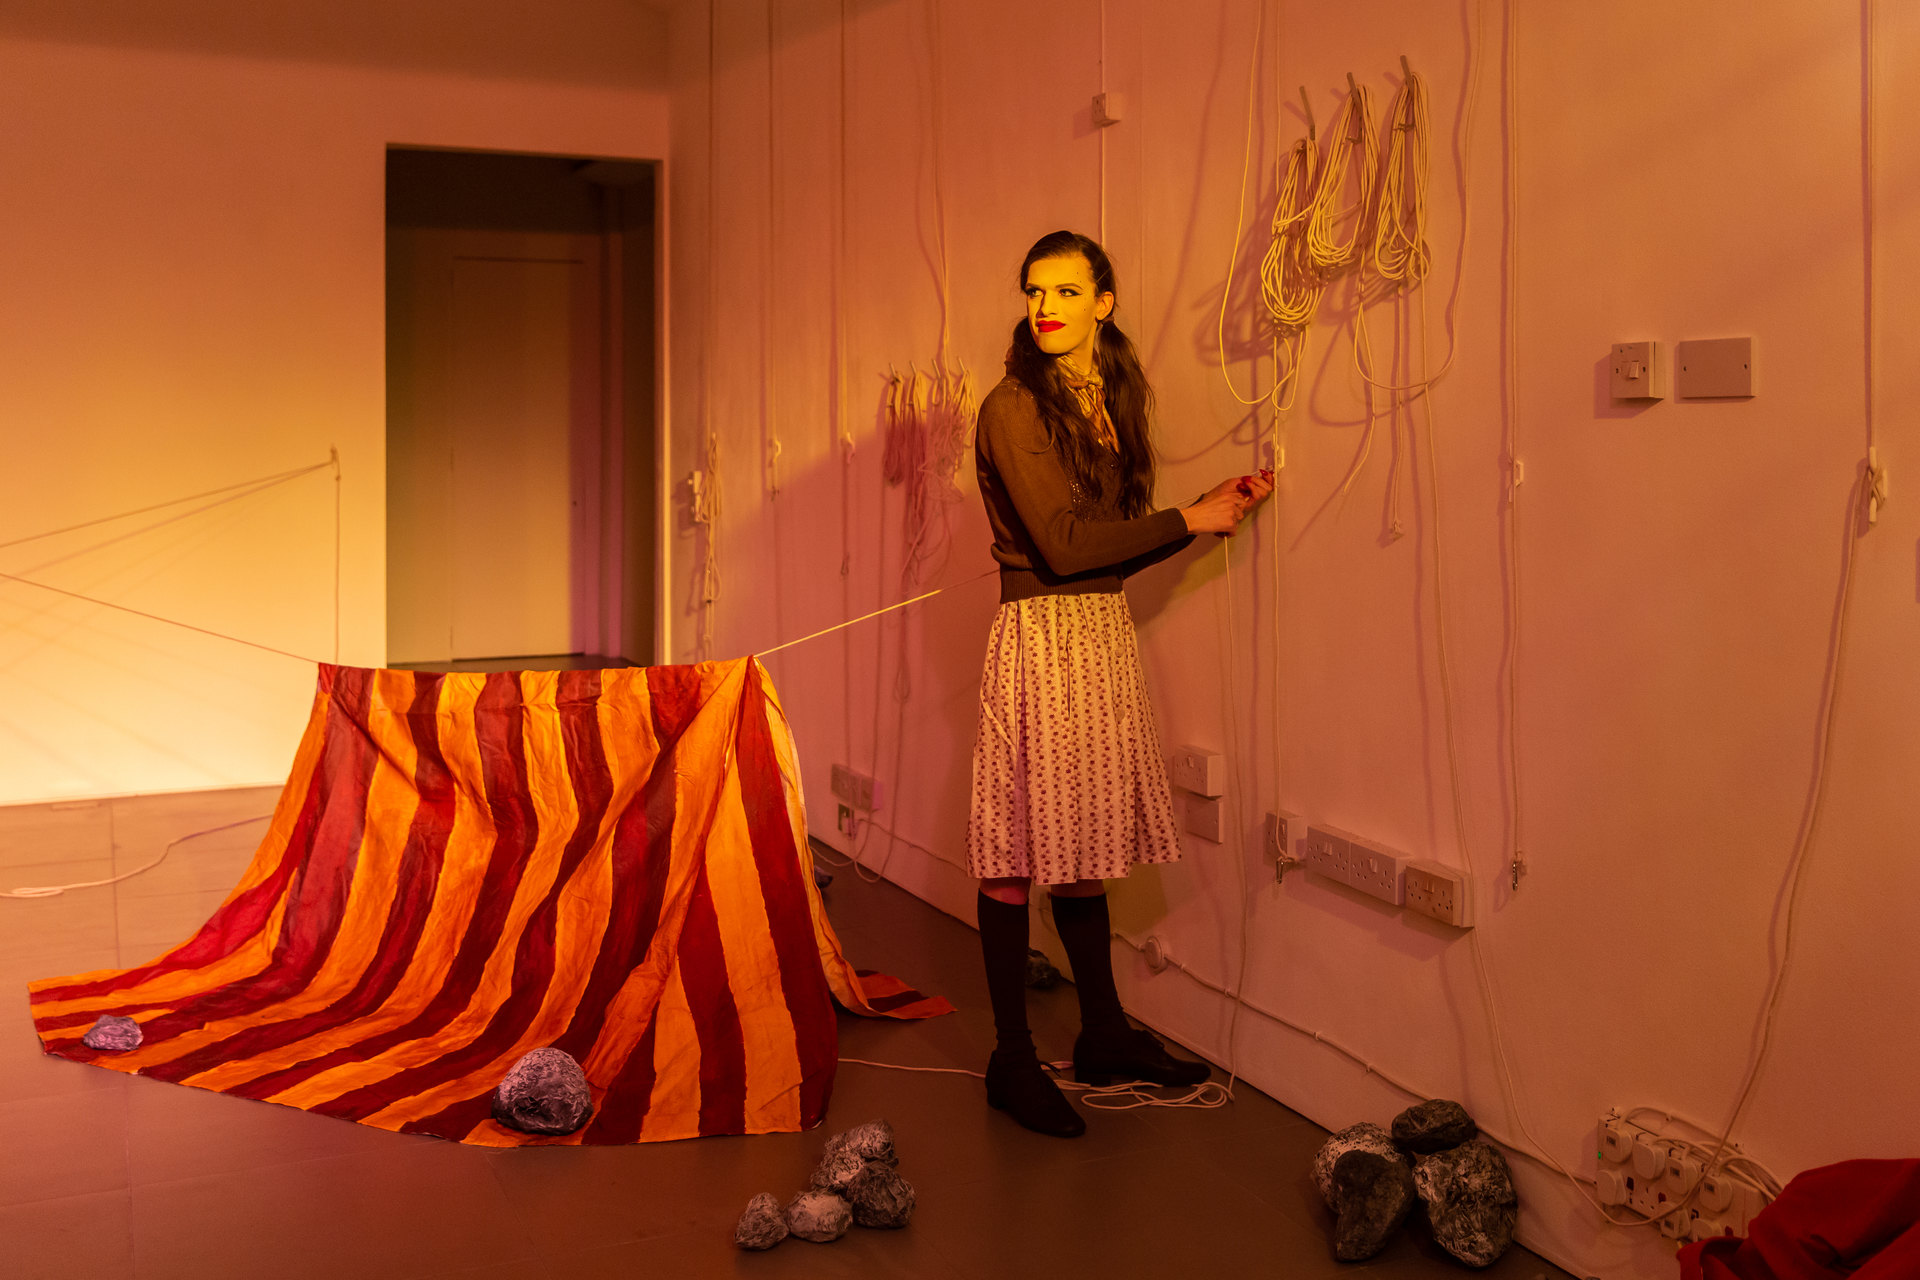 Alex Margo Arden and Caspar Heinemann, THE FARMYARD IS NOT A VIOLENT PLACE AND I LOOK EXACTLY LIKE JUDY GARLAND, 2019, Performance, Cell Project Space